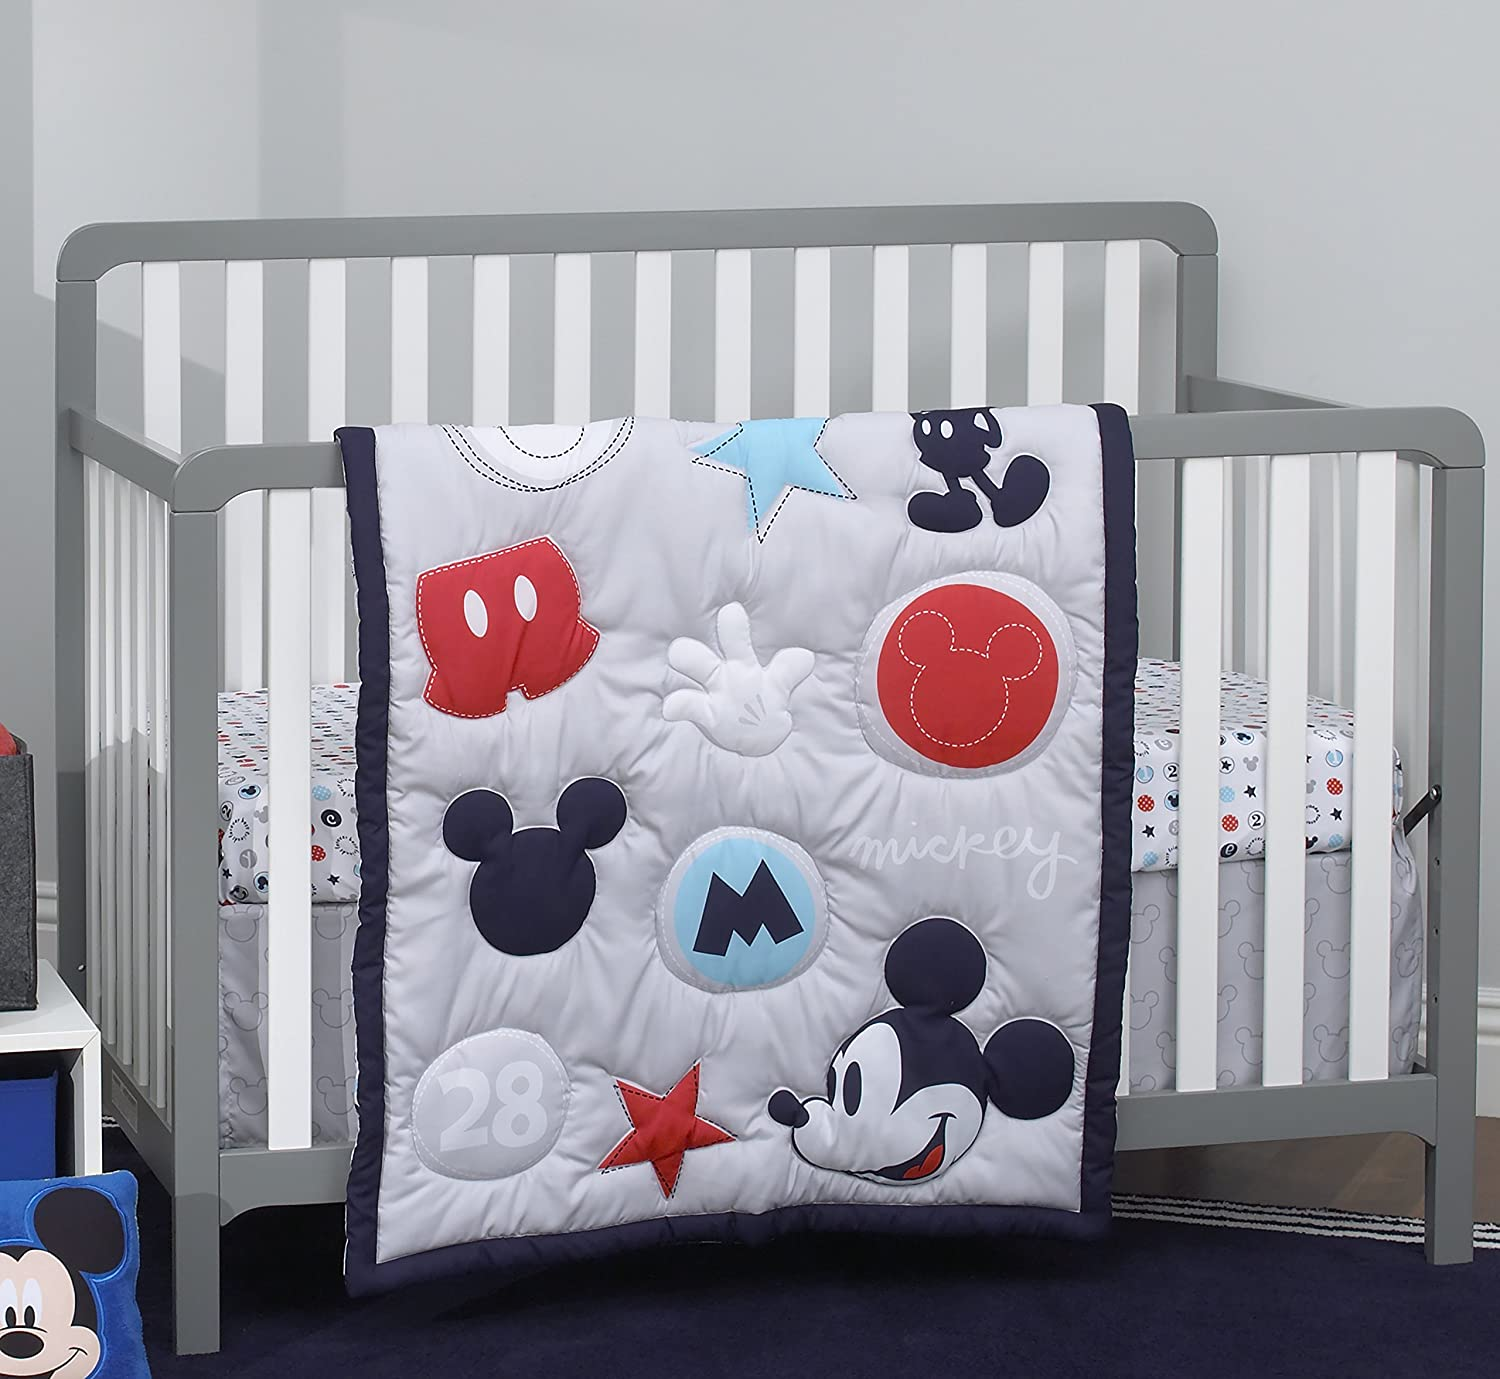 Disney Mickey Mouse 3 Piece Crib Bedding Set Crown Crafts Infant Products 6520276